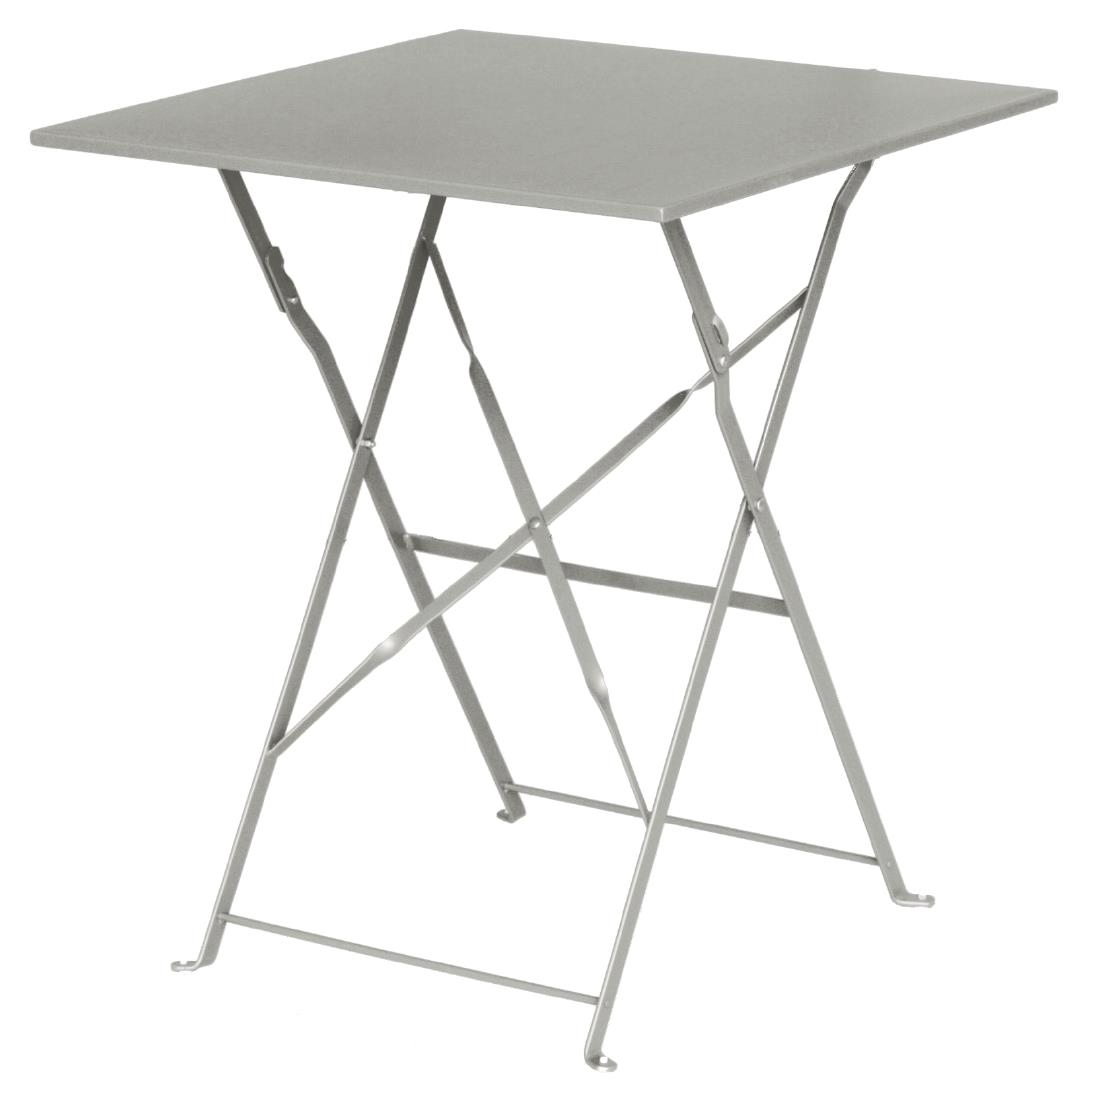 Steel Folding Table Square - Grey